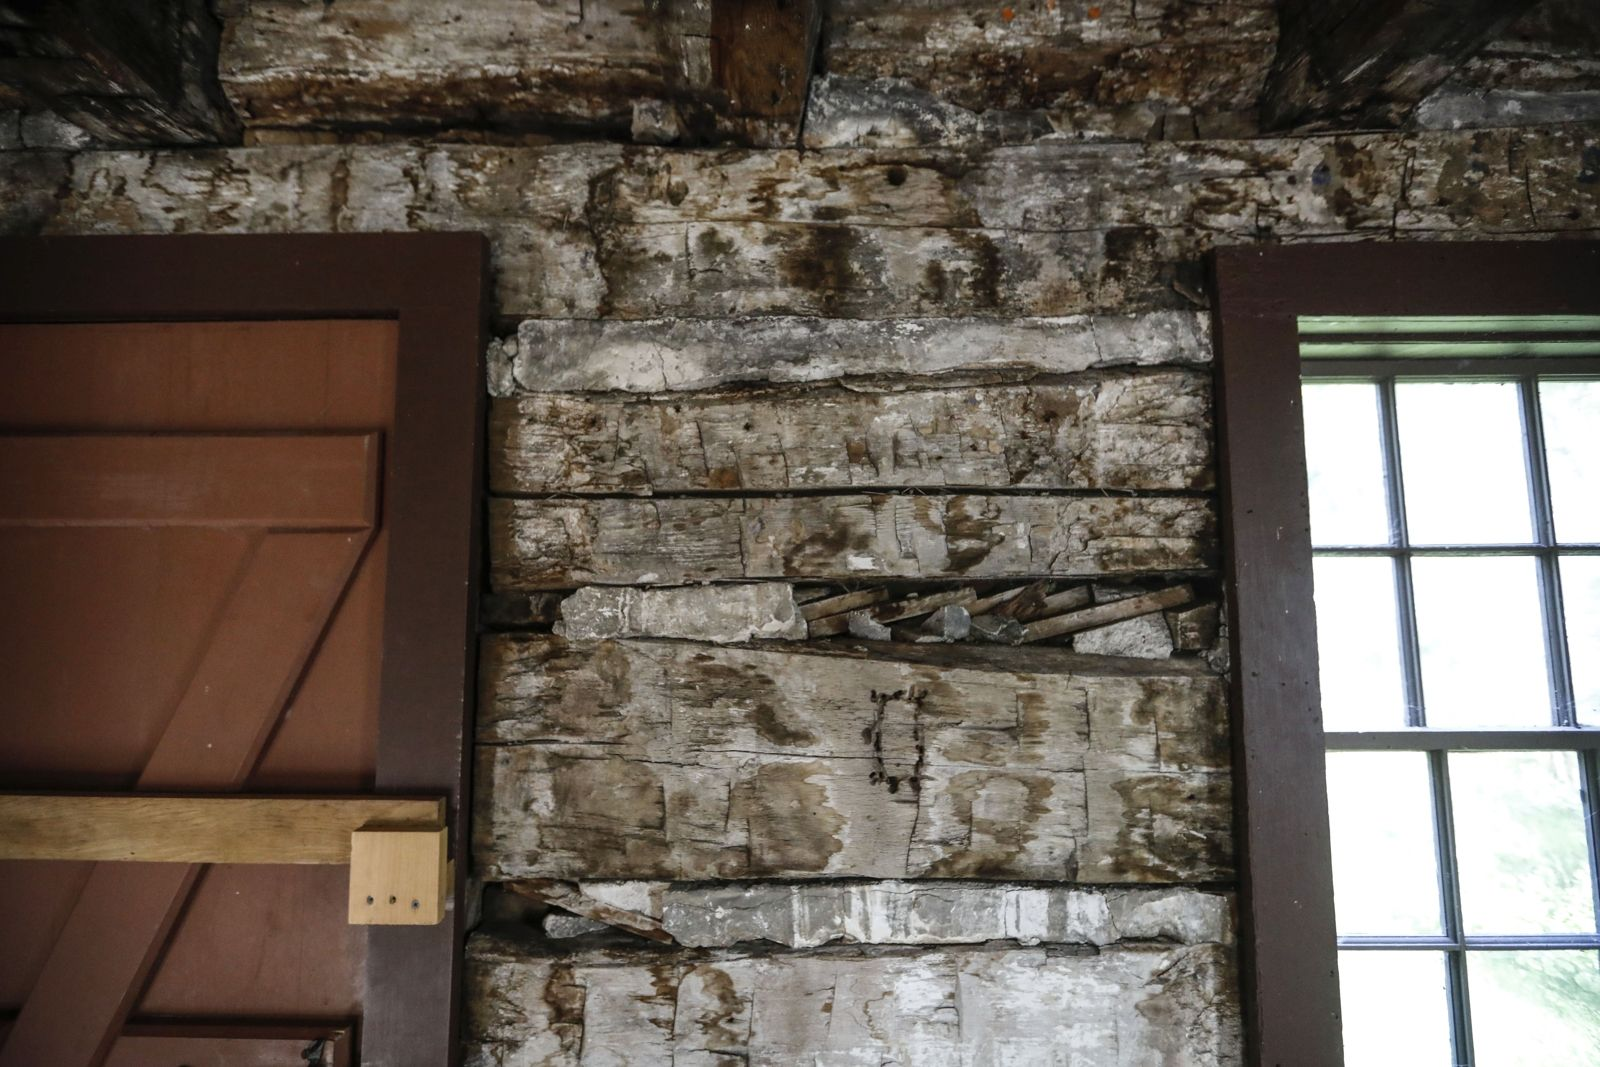 Inside the Schmitt Log House, the unfinished walls reveal the 19th century log house style of construction.